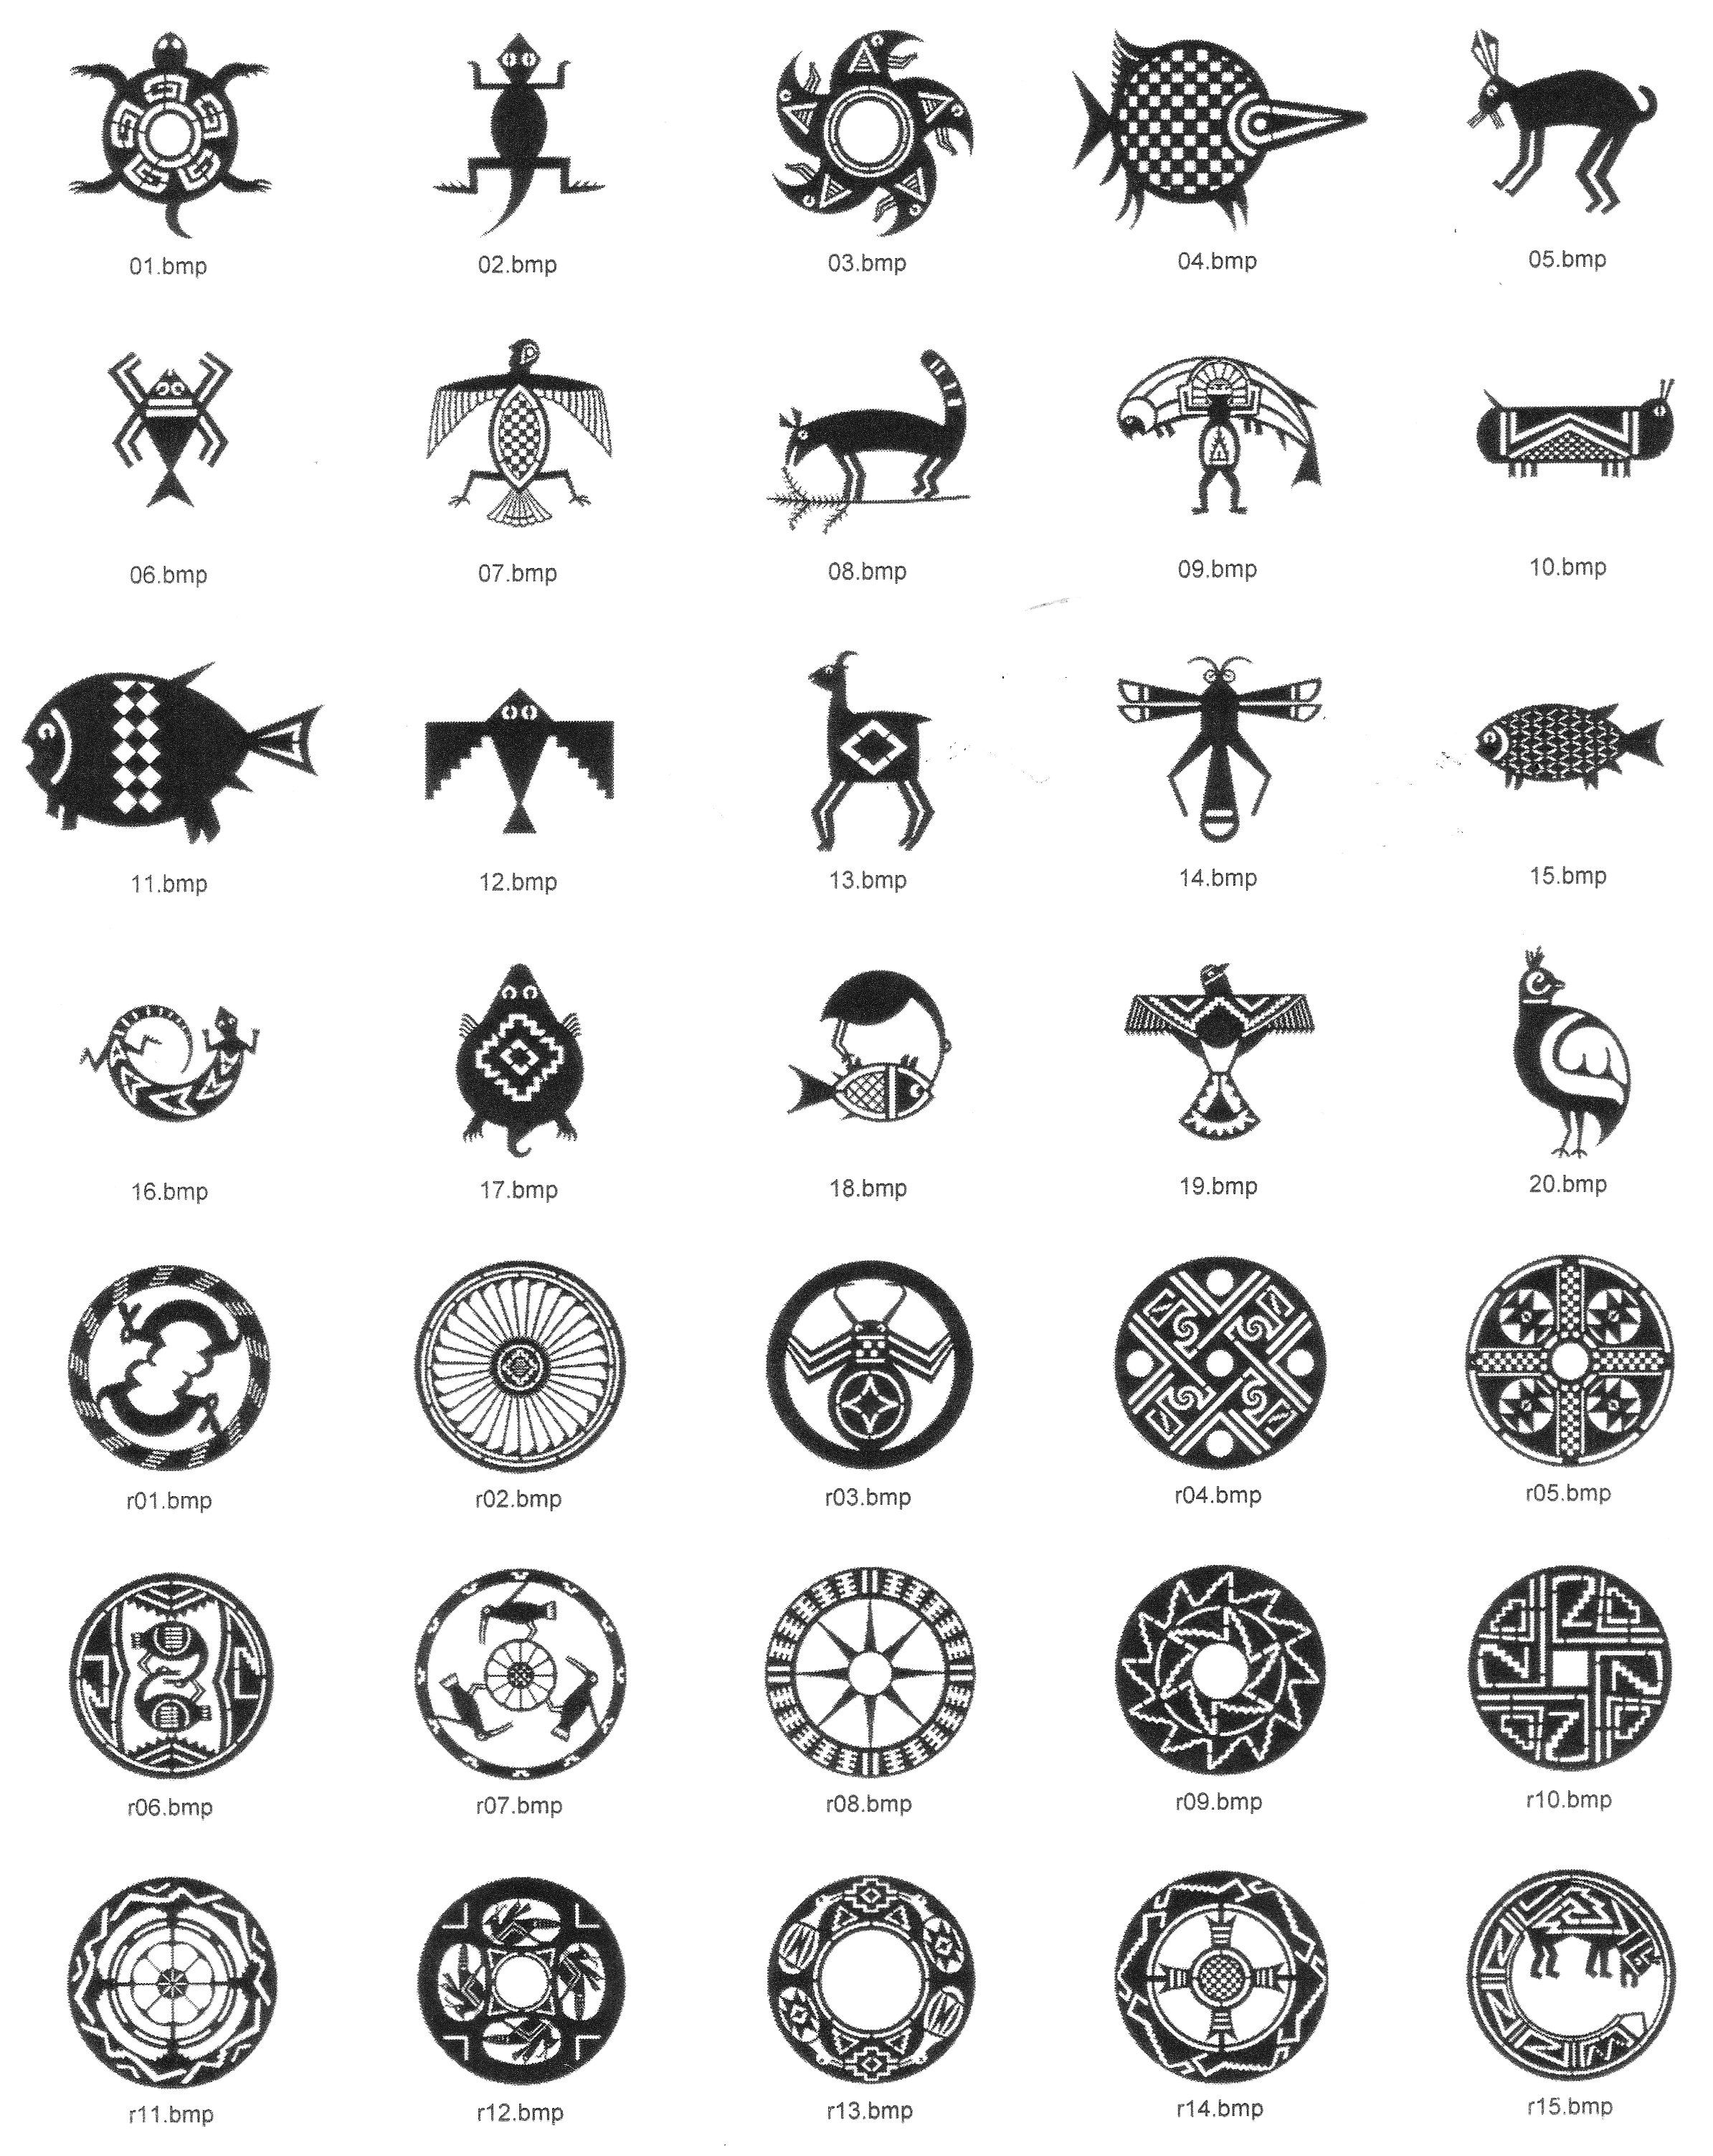 Colombian Tribal Tattoo : colombian, tribal, tattoo, Mimbres, Native, American, Tattoo, Designs,, Tattoo,, Colombian